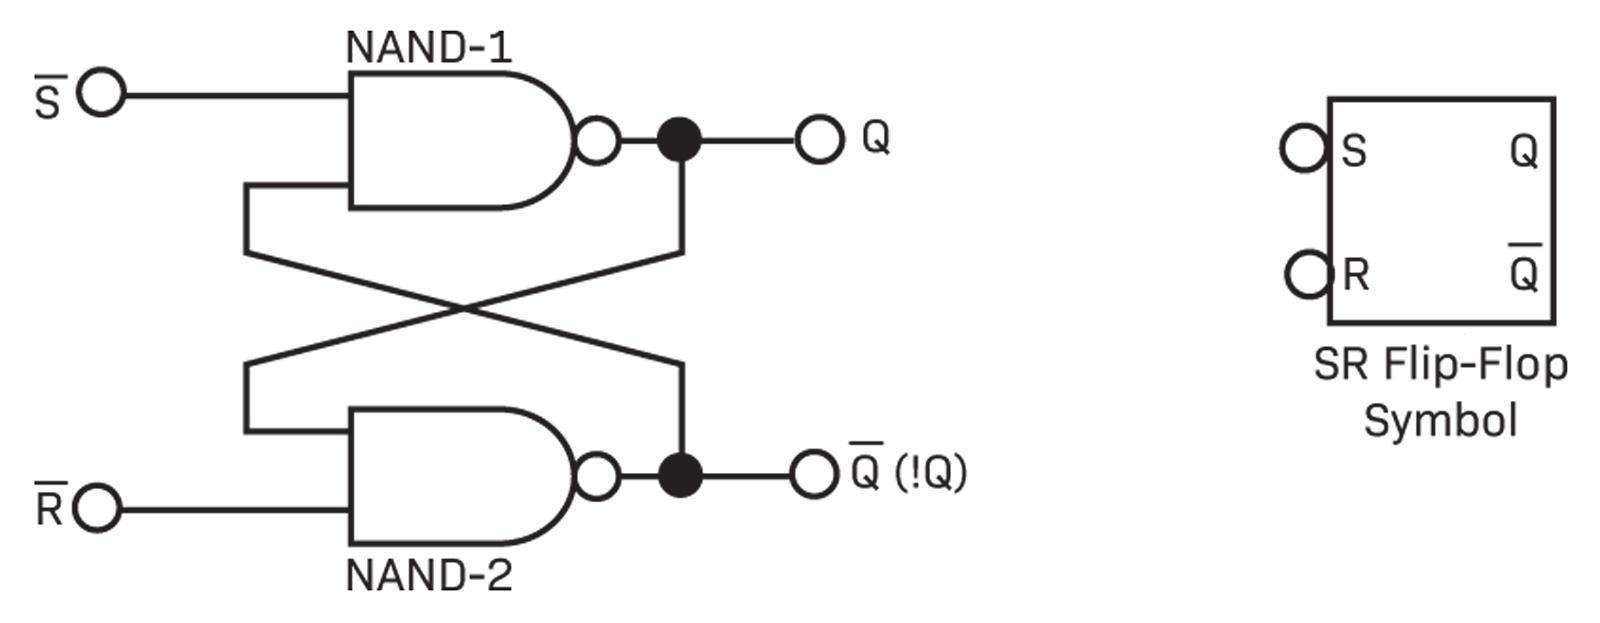 hight resolution of that means that both are normally high but grounding s causes a set changing q to logic 1 and grounding r causes a reset changing q to logic 0